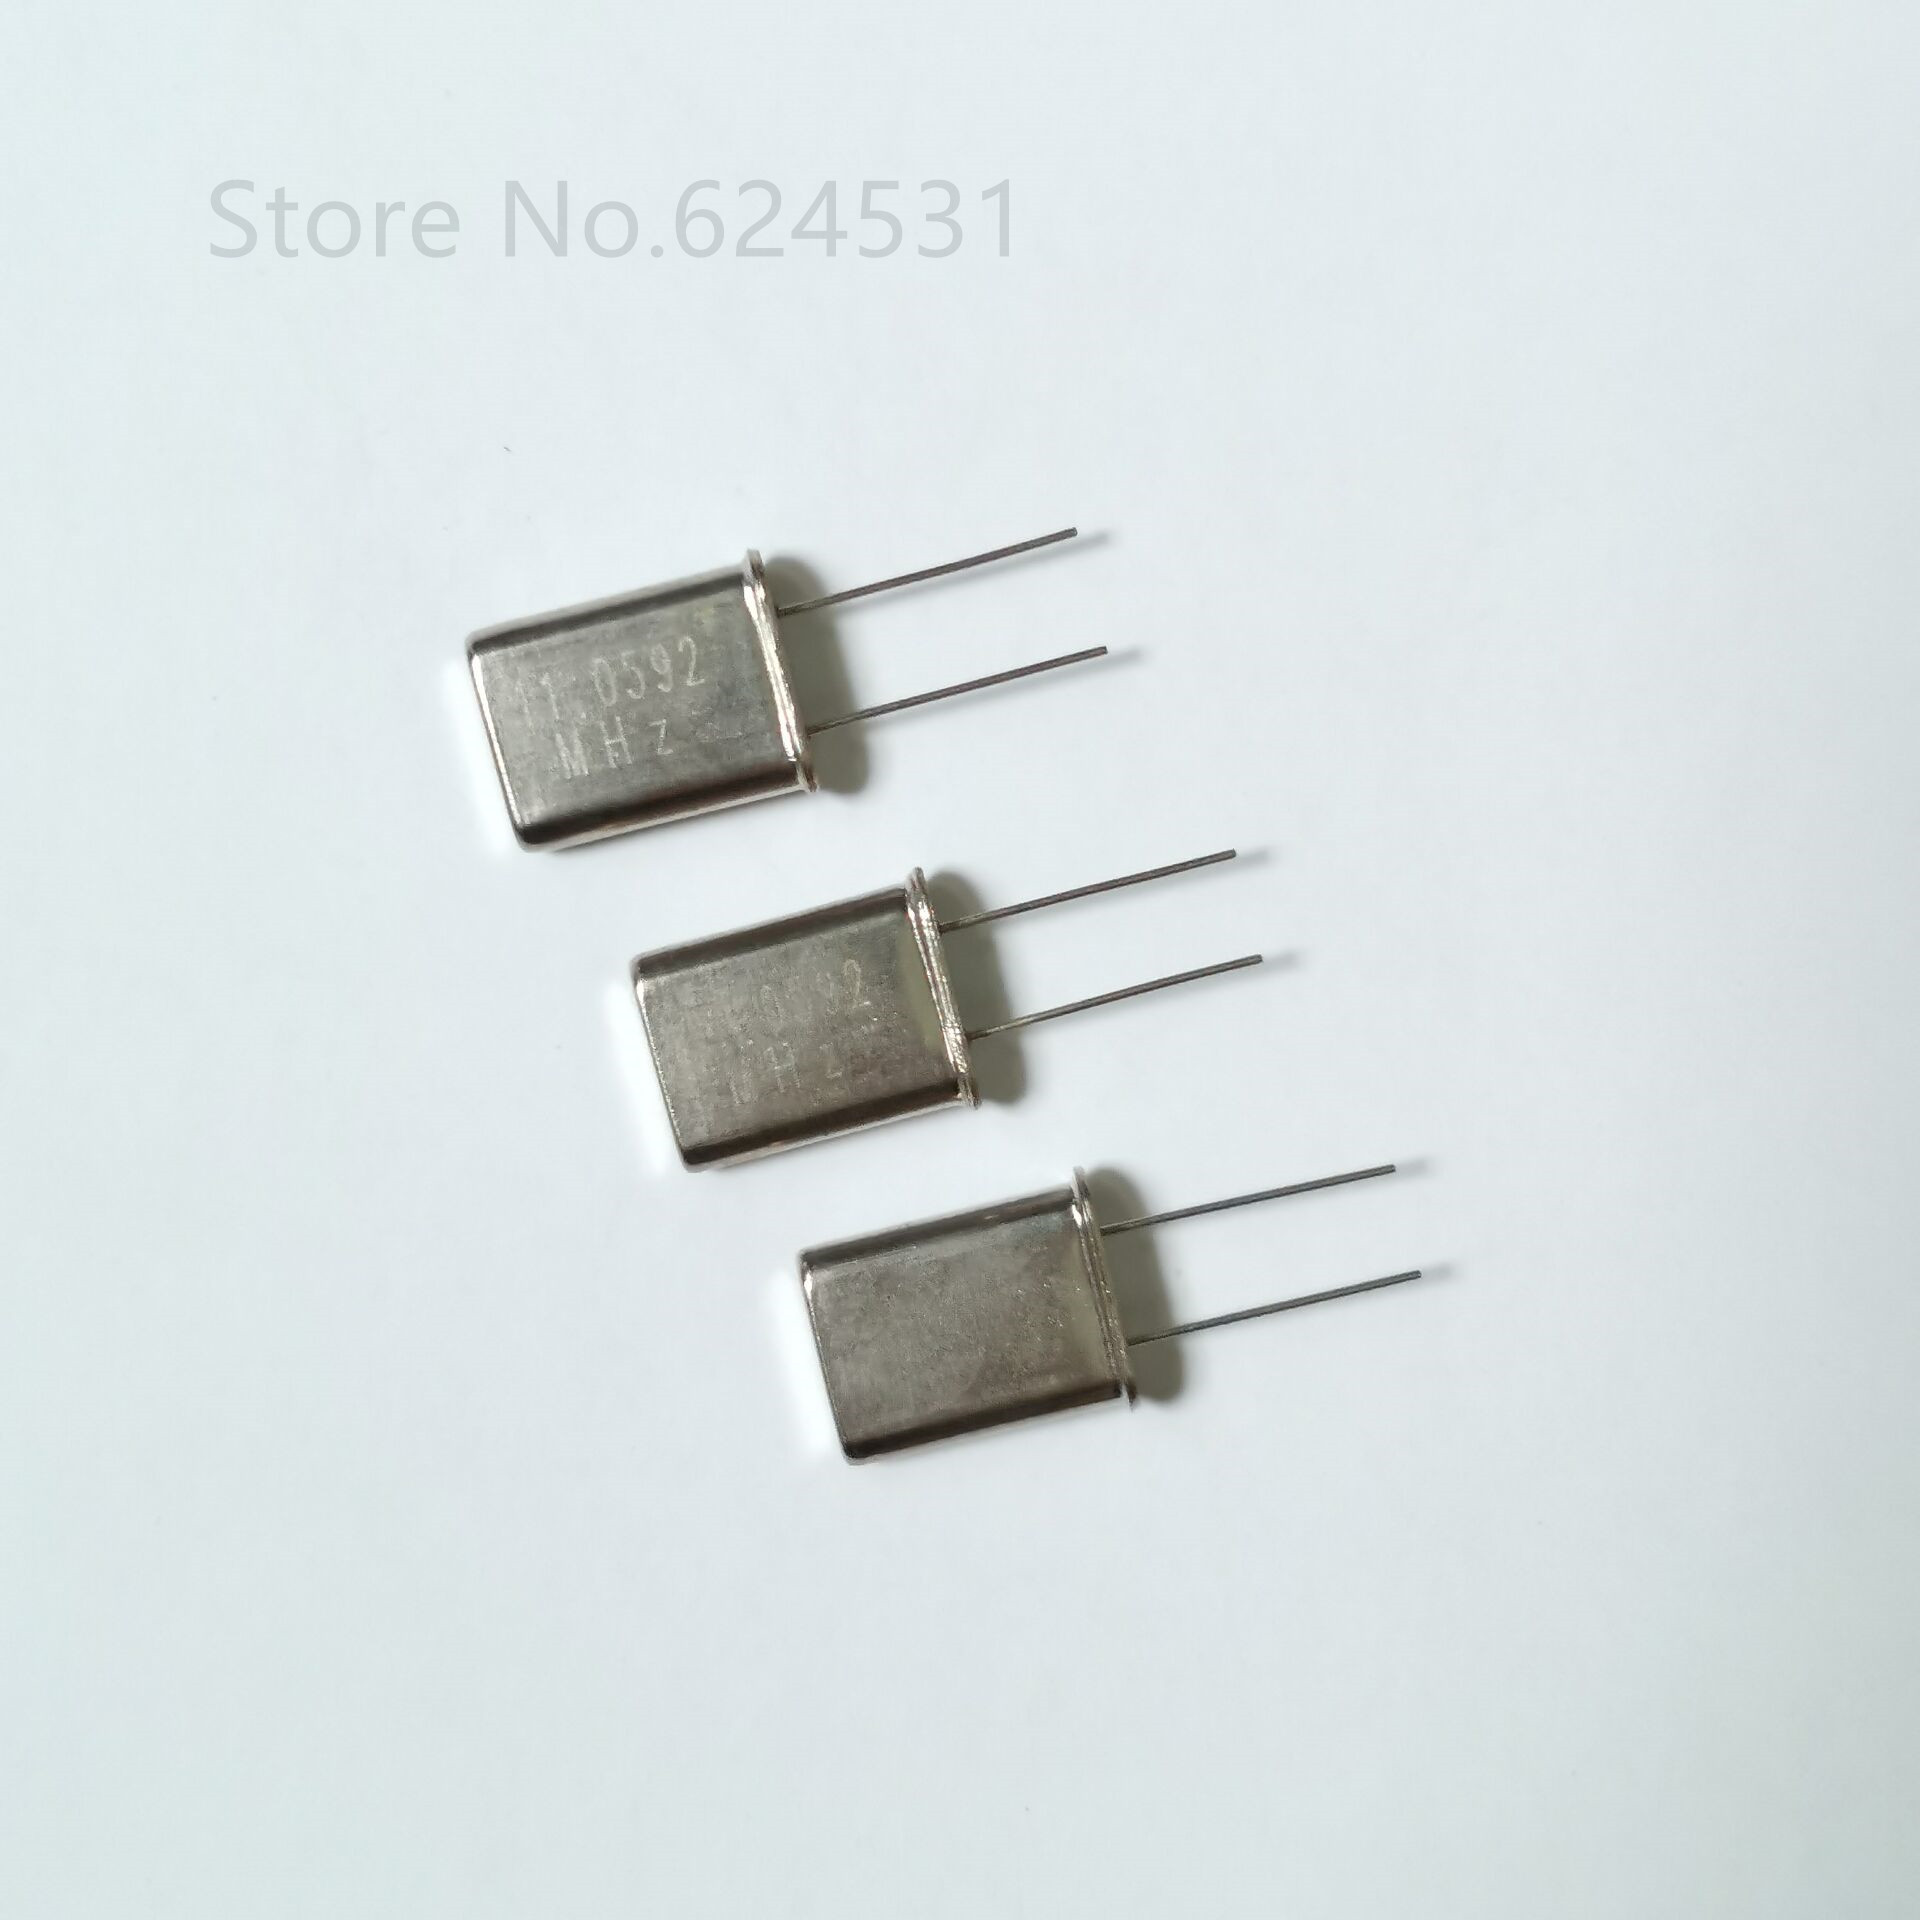 10pcs In-line HC-49U Quartz Crystal 11.0592MHZ 11.0592M Passive Crystal Resonator